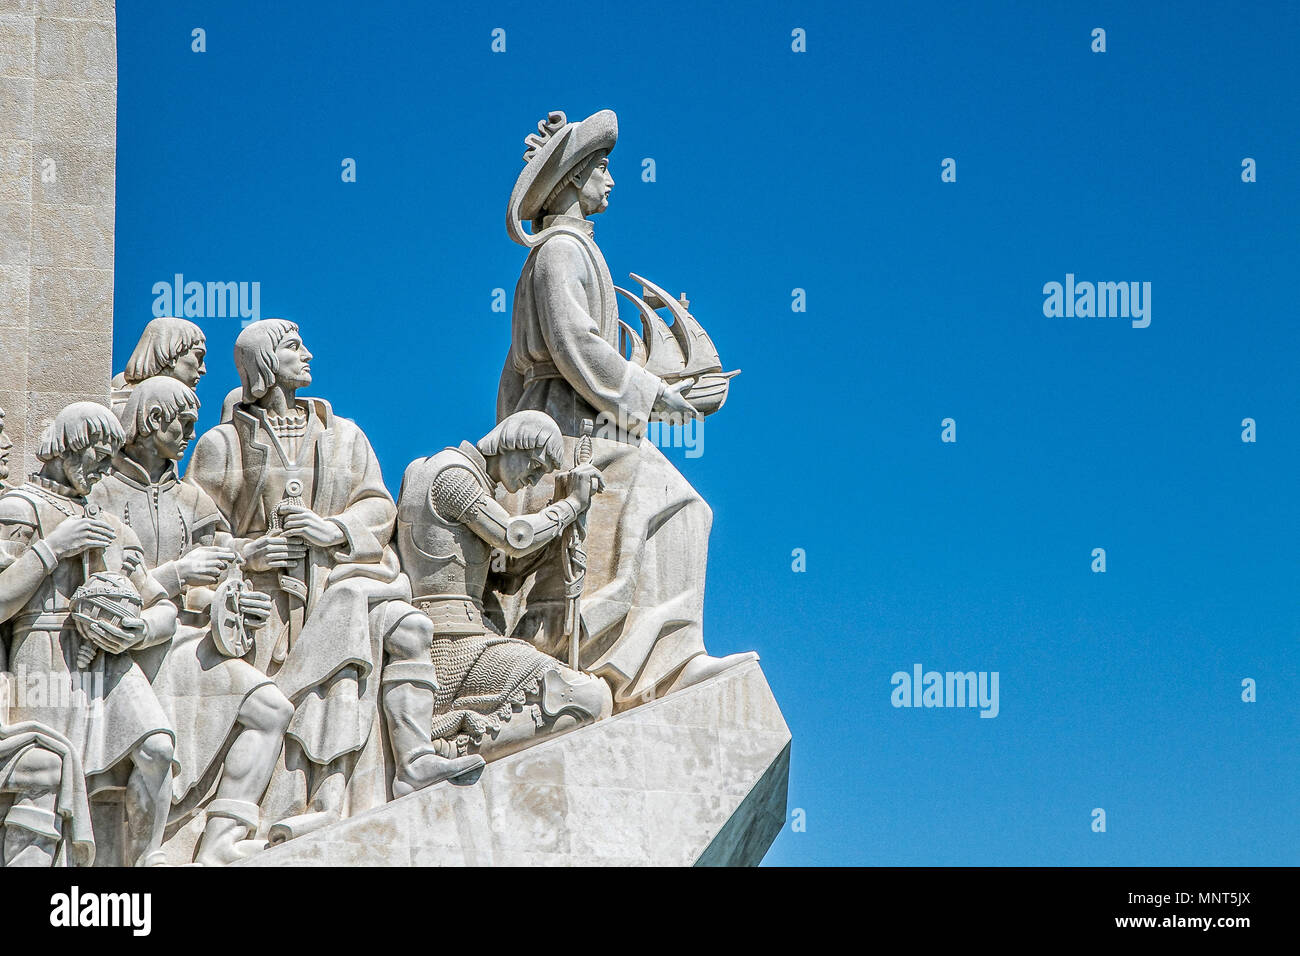 Lisbon, Portugal, May 5, 2018: Monument to the Discoveries, depicting Henry the Navigator and other prominent figures from Portugal's Age of Discovery - Stock Image